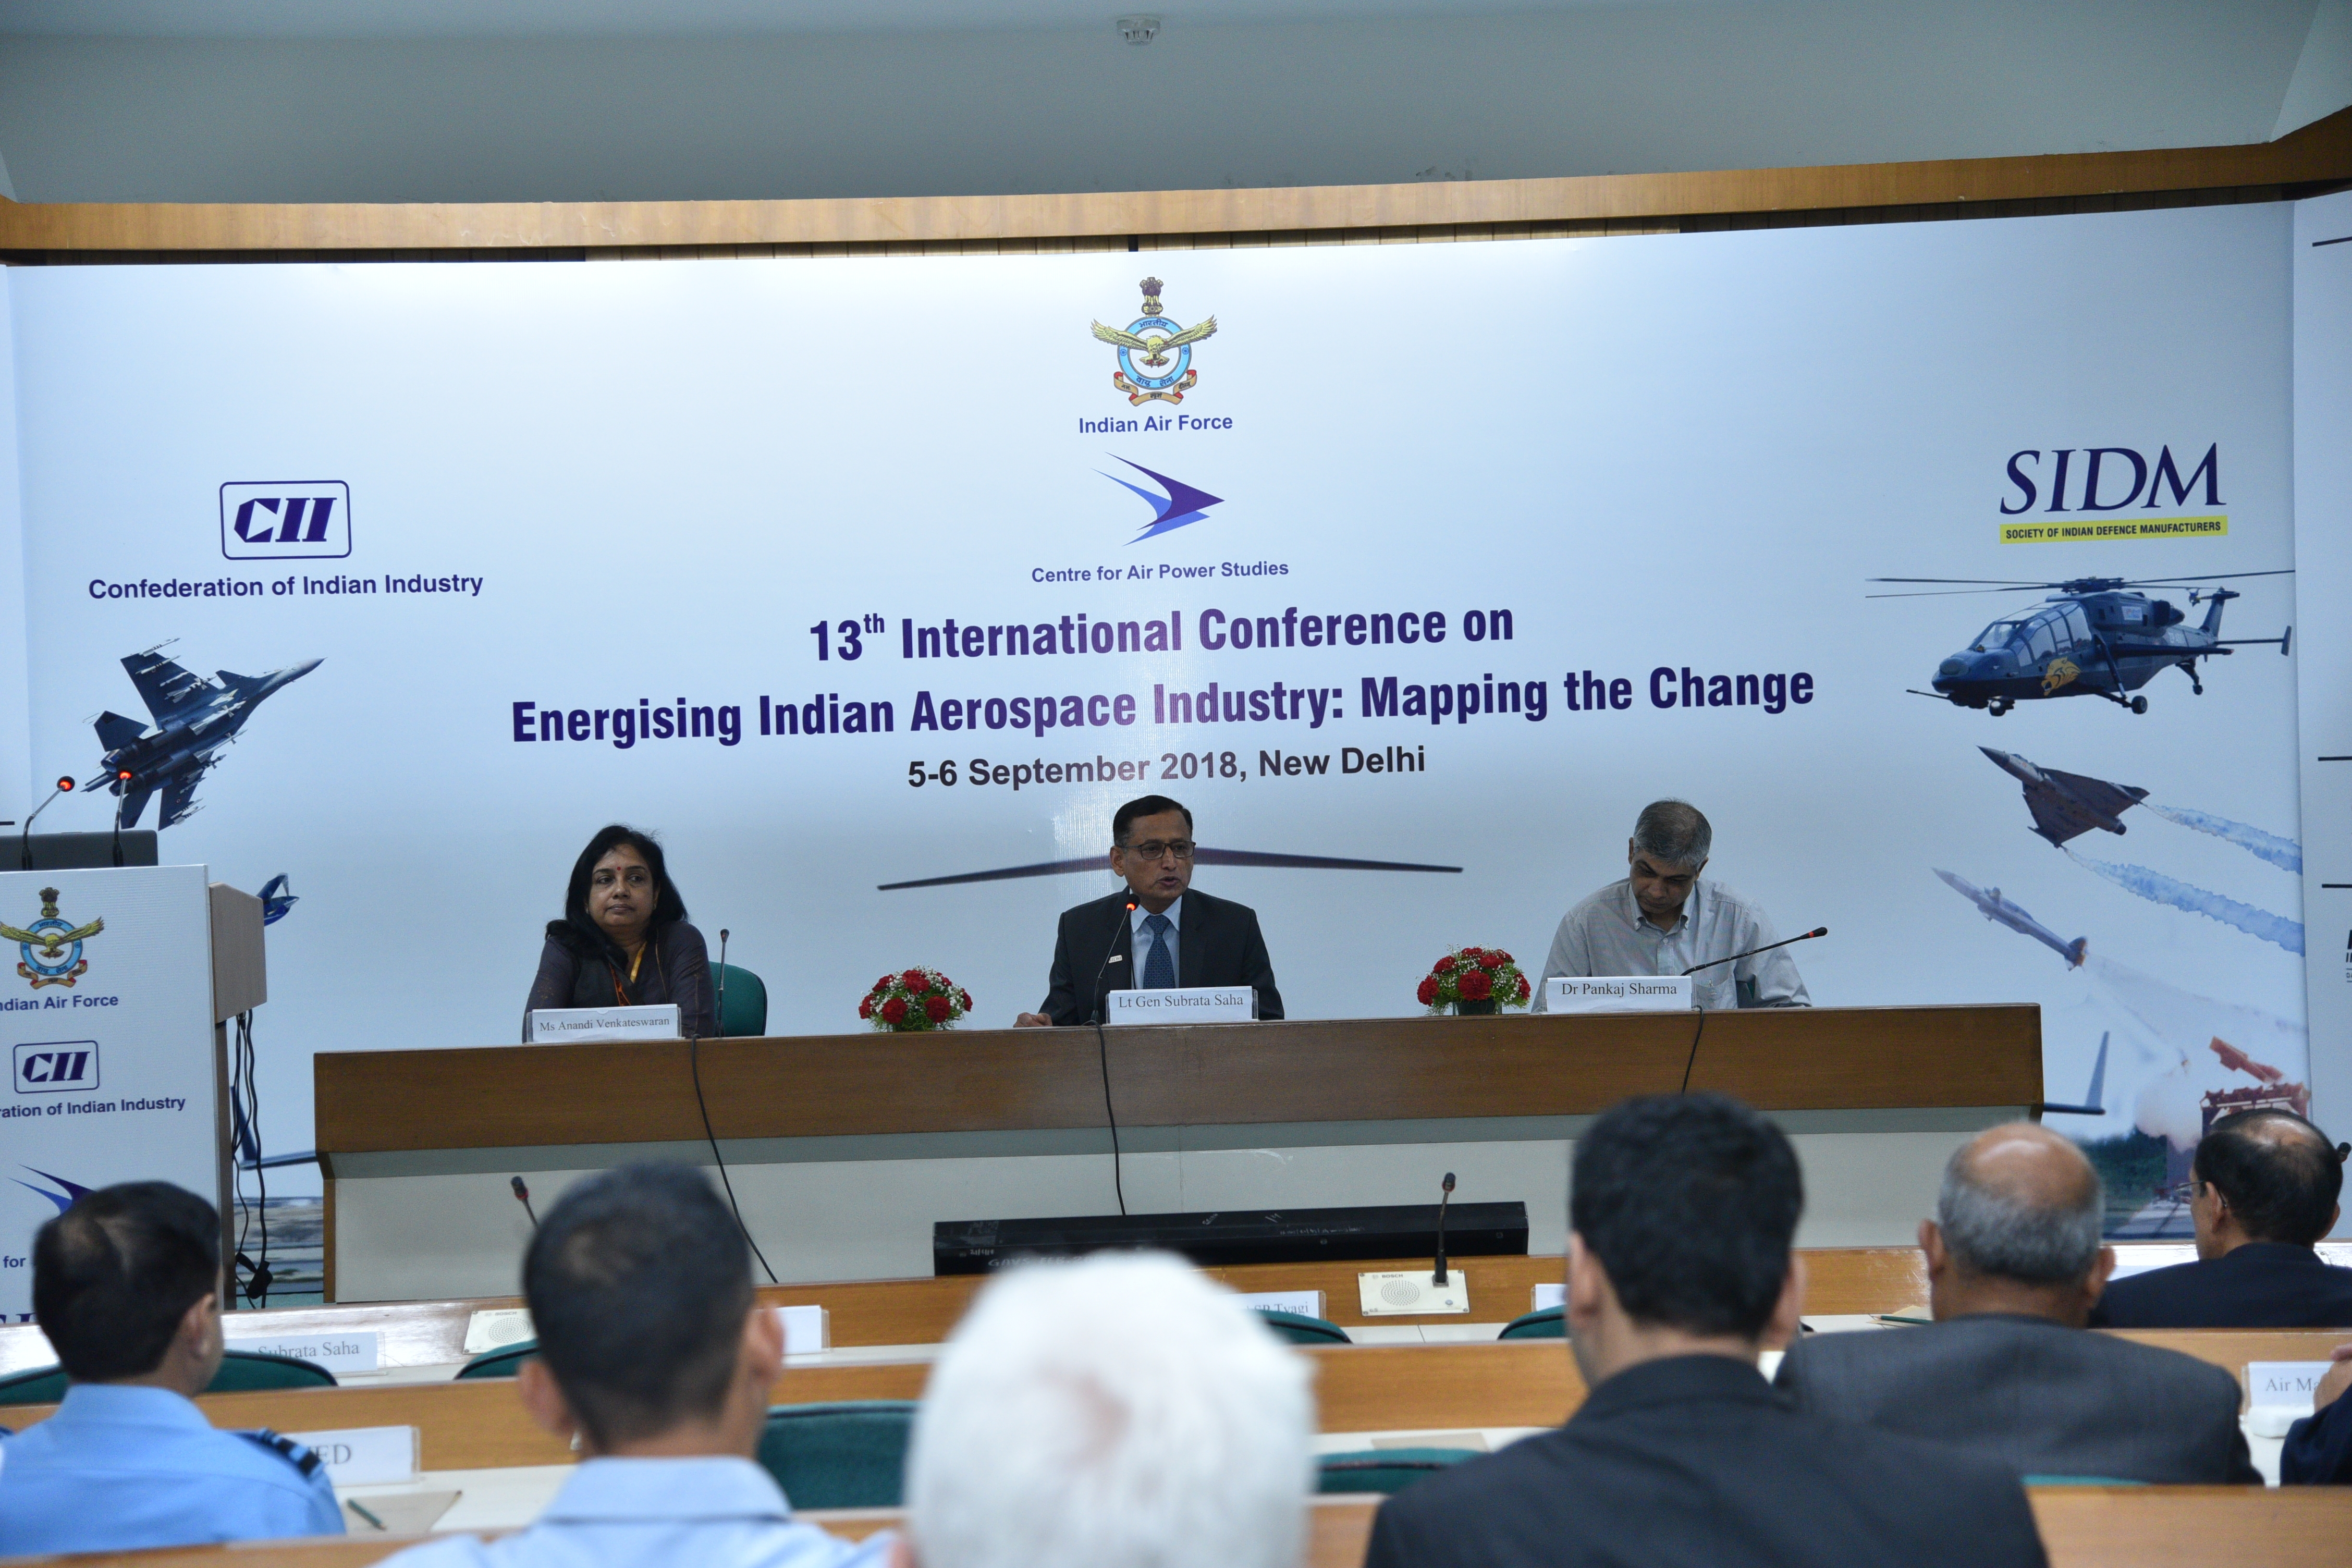 DG SIDM moderating a panel session with Joint Secretary and Under Secretary (D&ISA), MEA at the 13th International Conference on Energising Indian Aerospace Industry